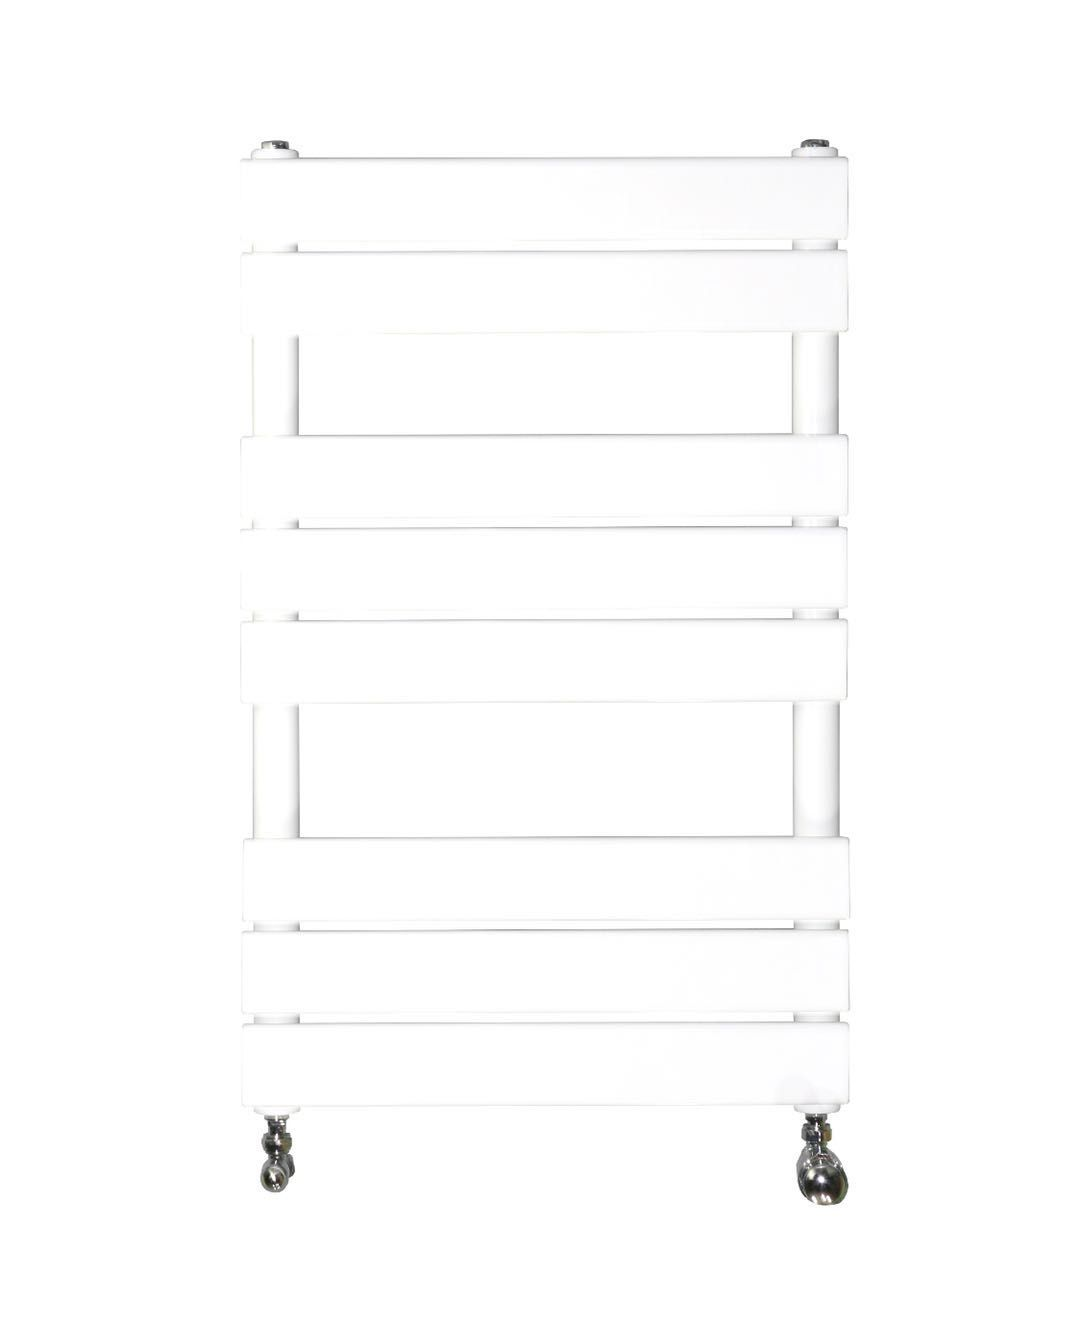 adige designer towel radiator small white.jpg